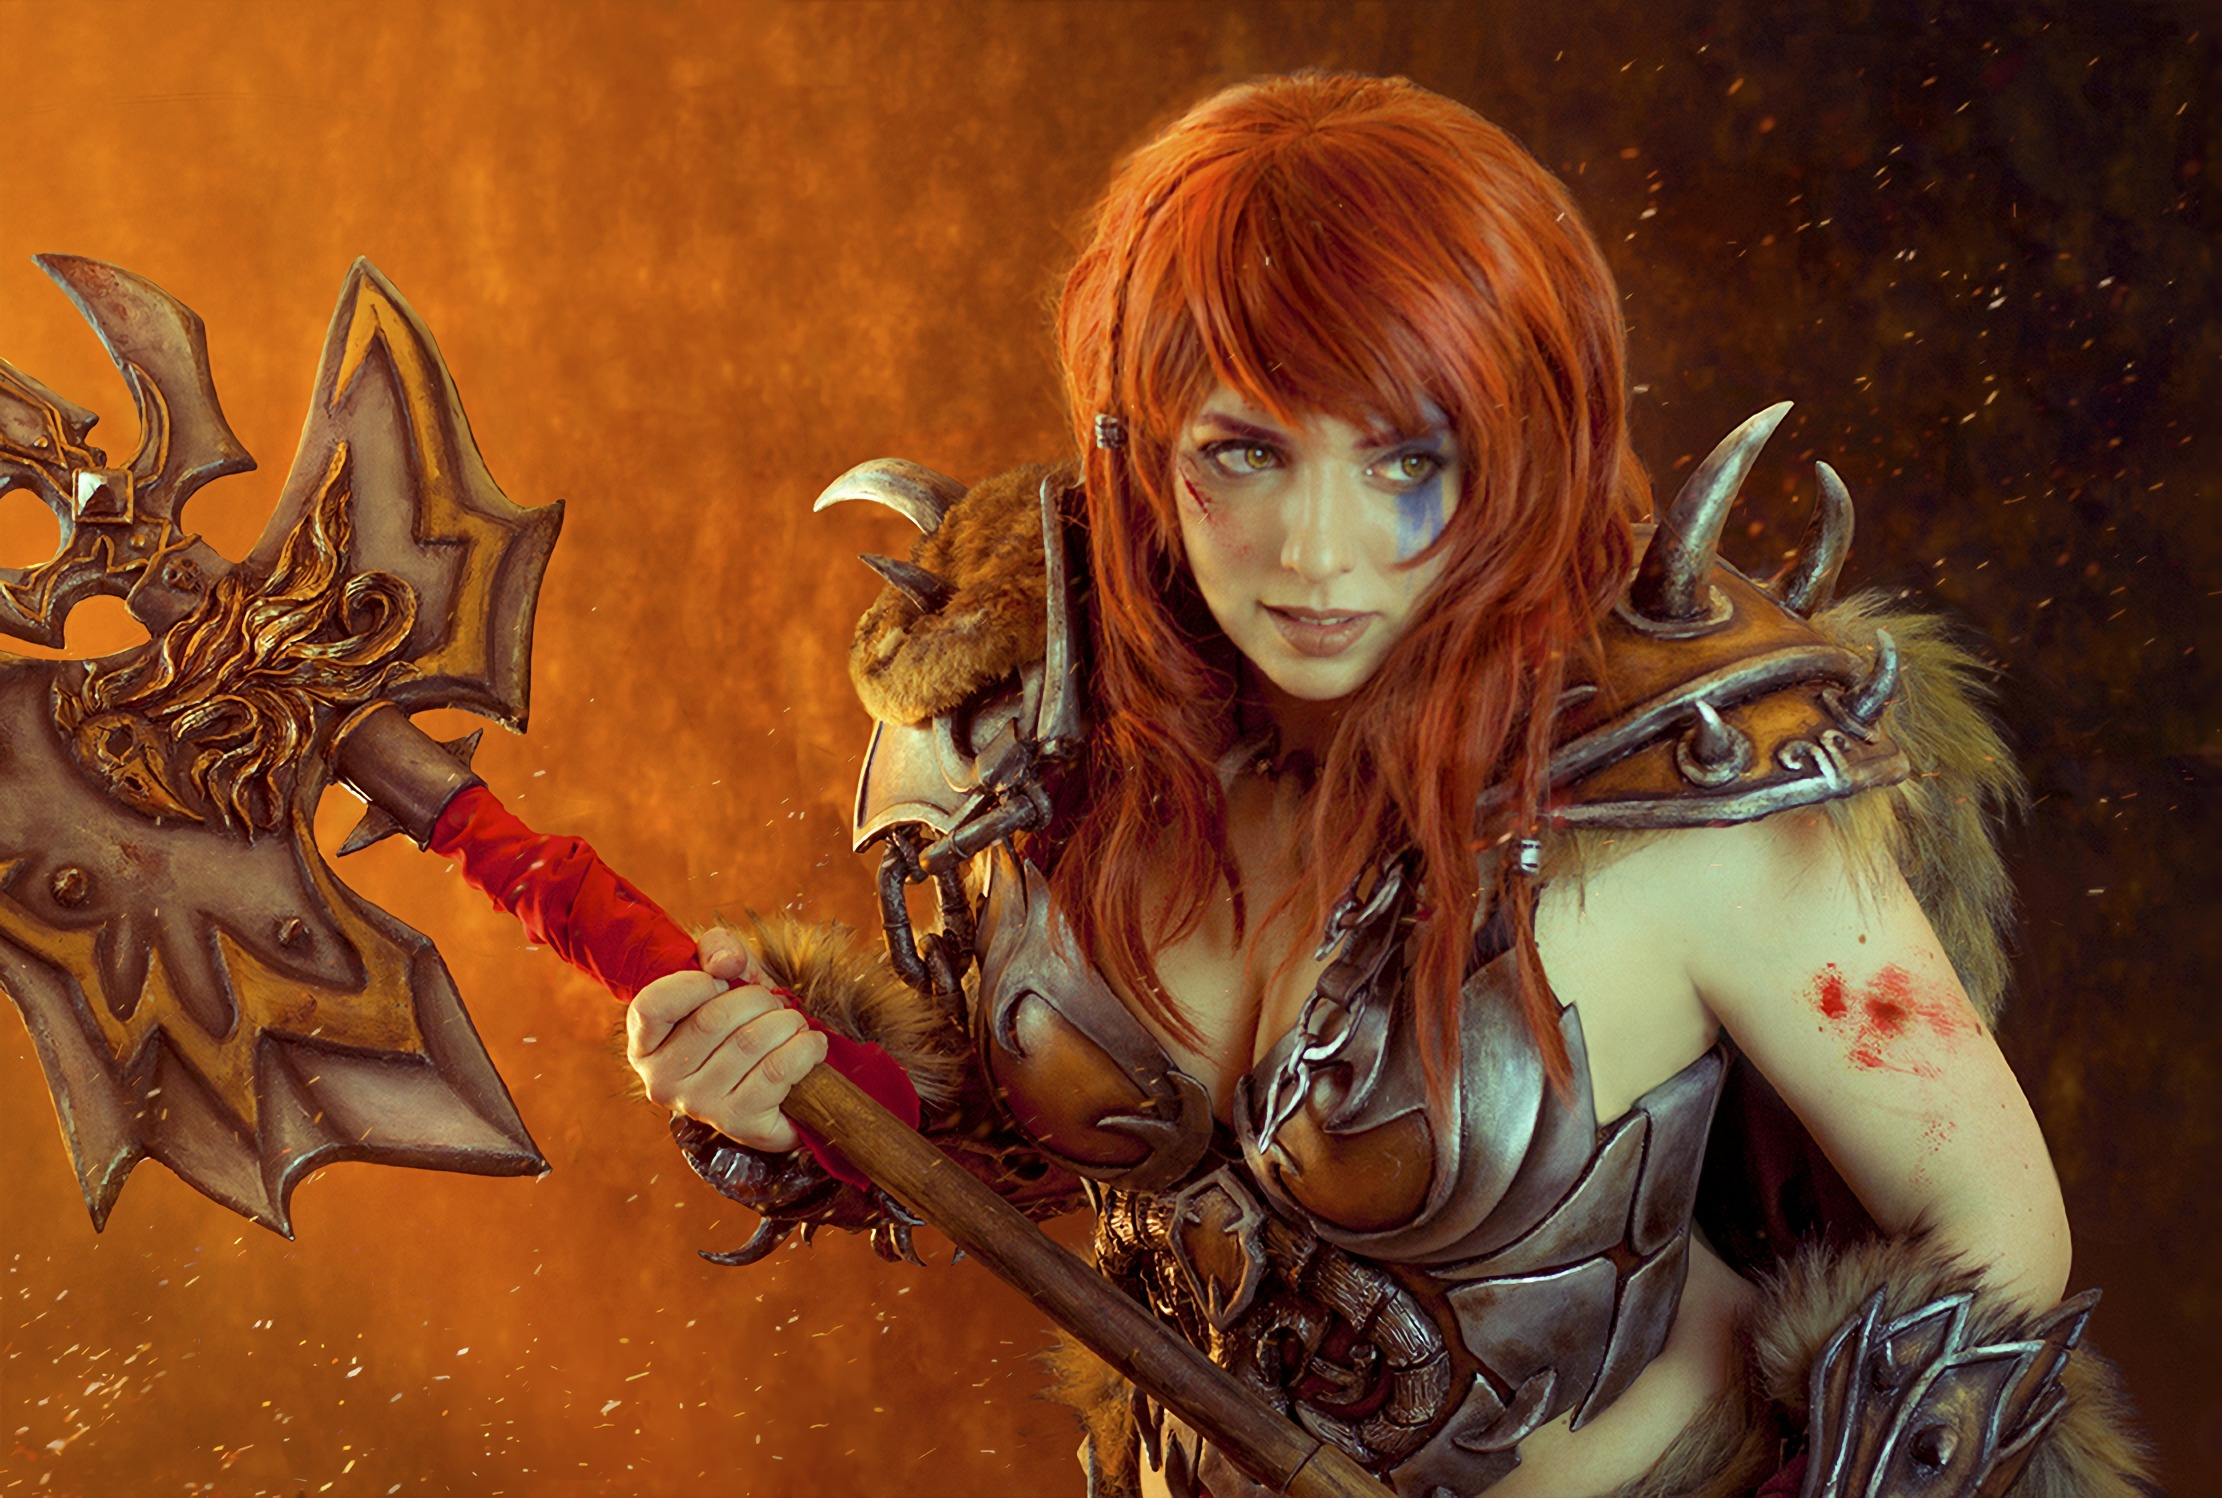 Diablo 3: Barbarian cosplay by Anhyra